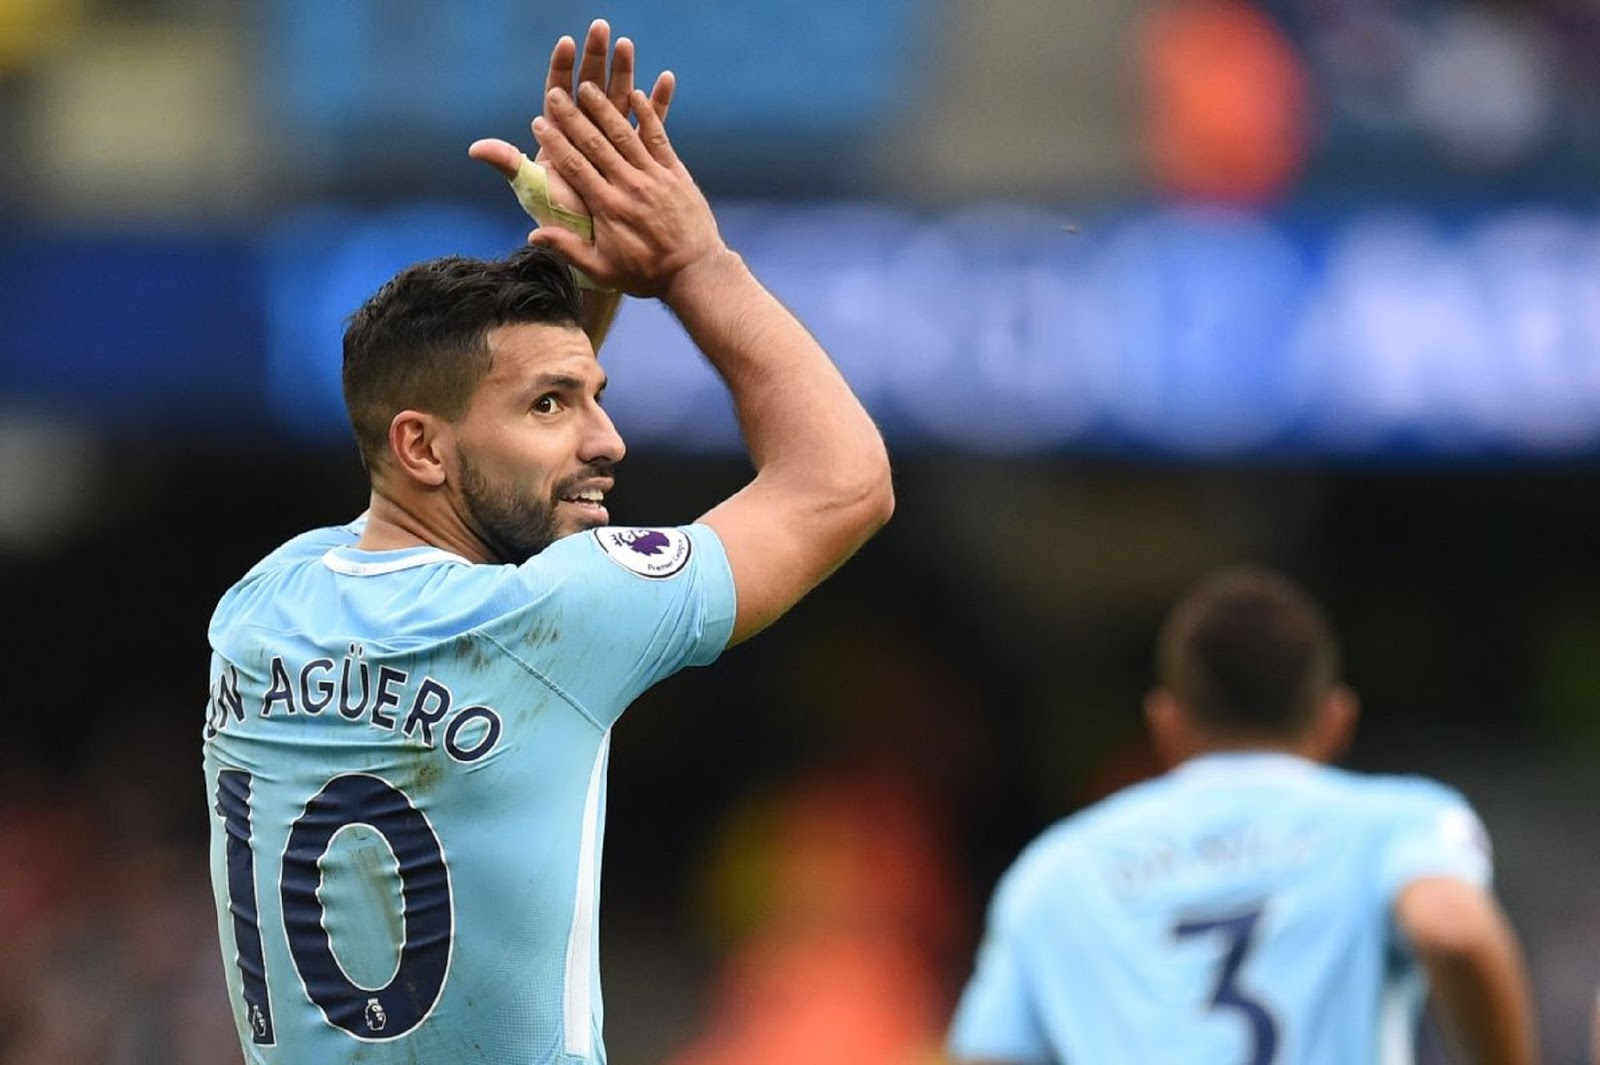 FOOTBALL SERGIO AGUERO IN SCARY CAR CRASH SAVED BY SEAT BELT IN